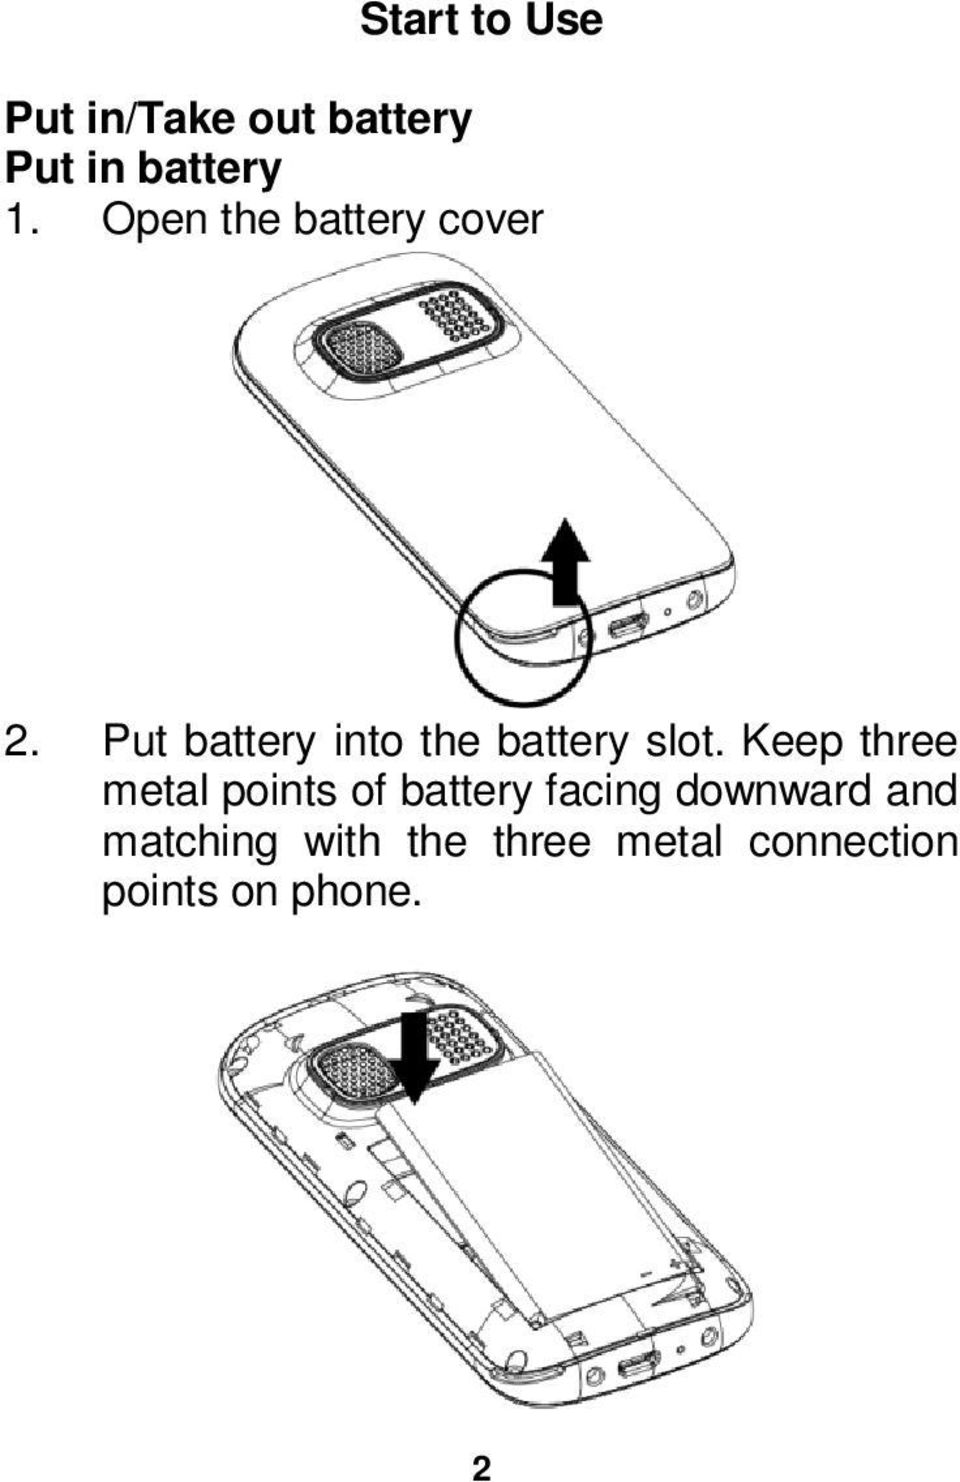 Put battery into the battery slot.